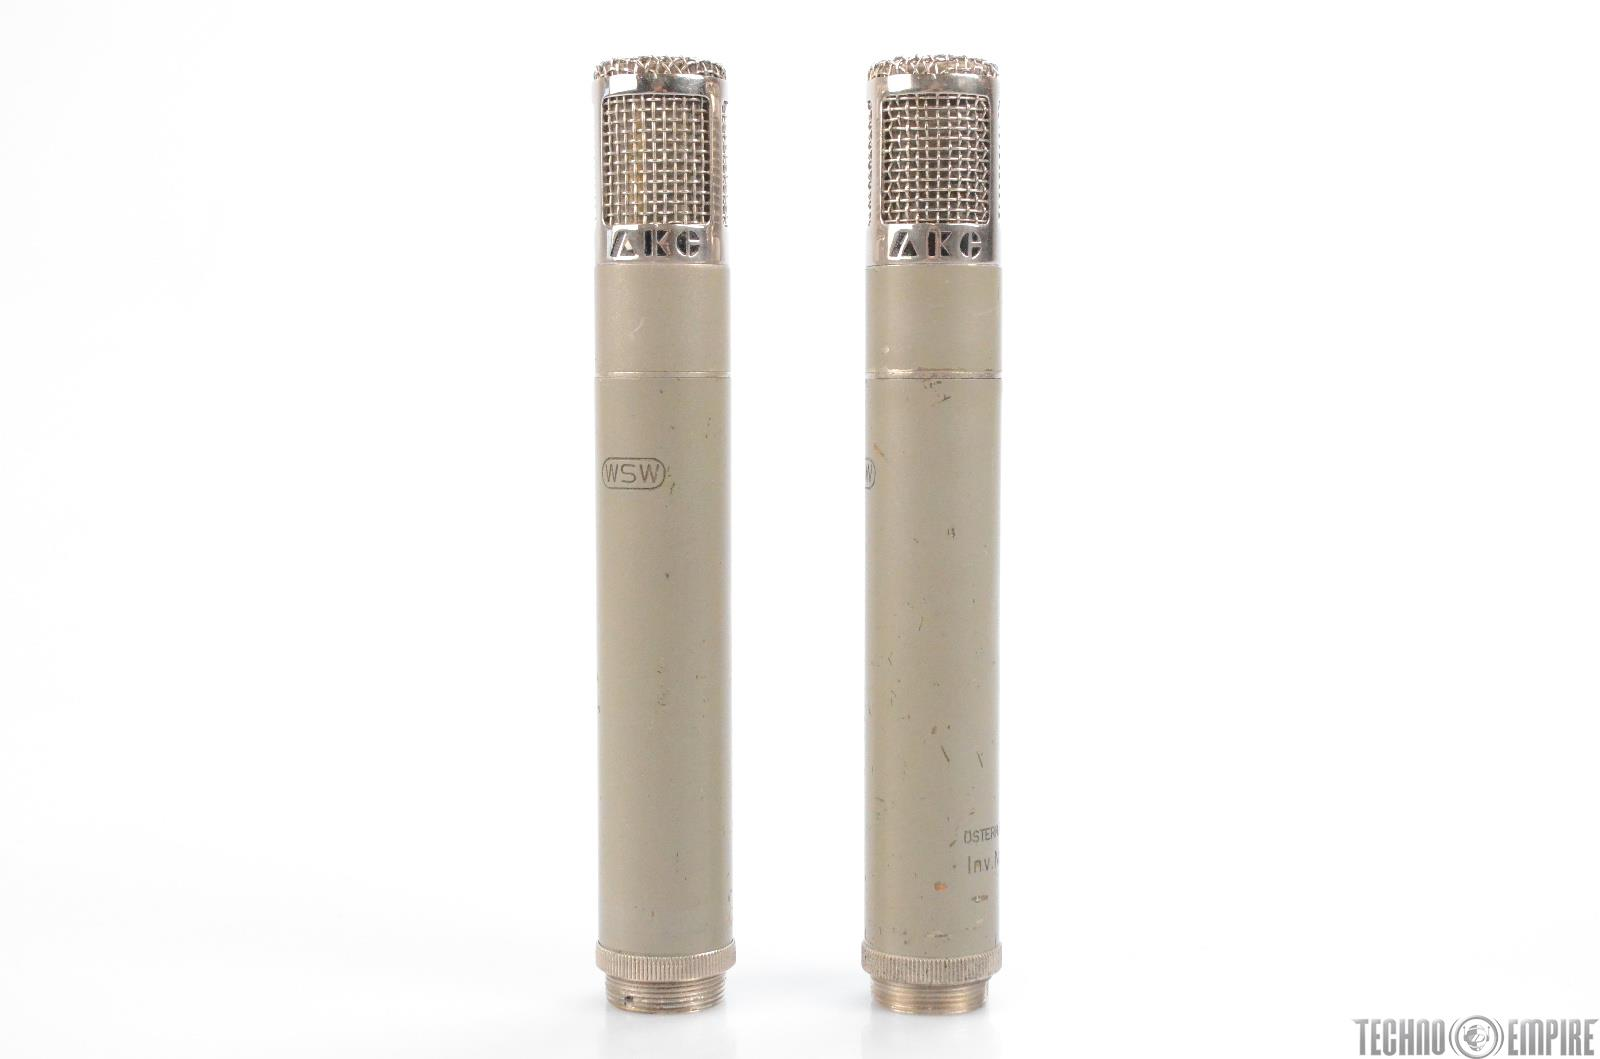 2 AKG C28A Tube Condenser Microphones Mics w/ Cases #30853